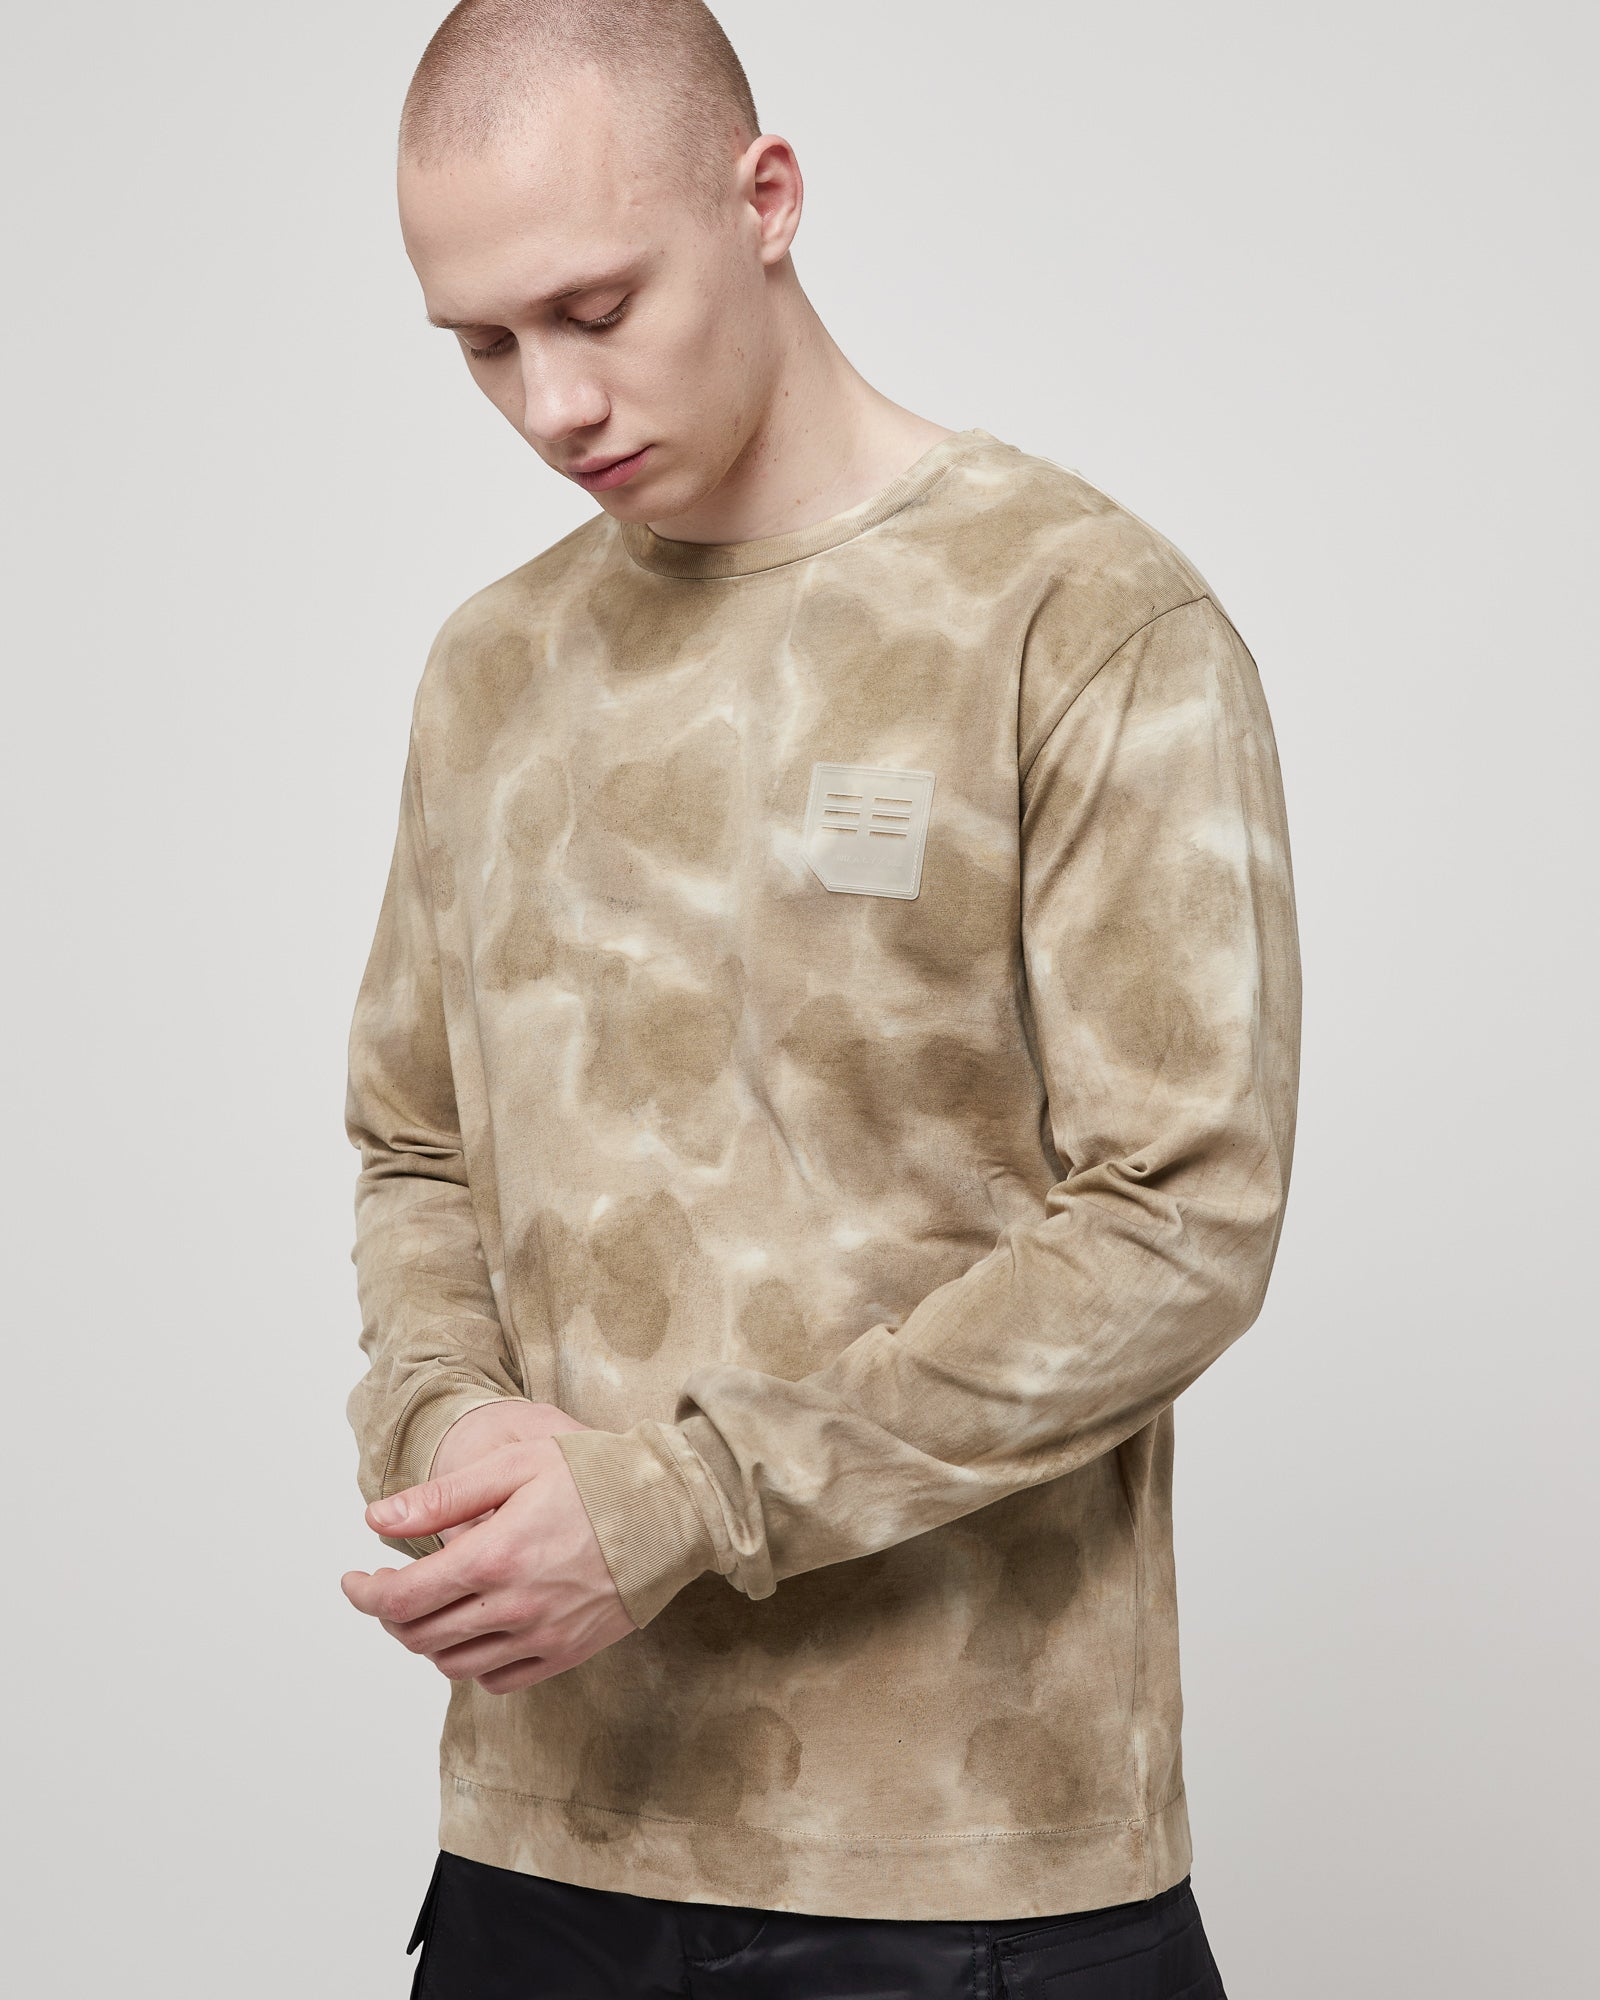 L/S T-Shirt with Treatment in Dark Sand